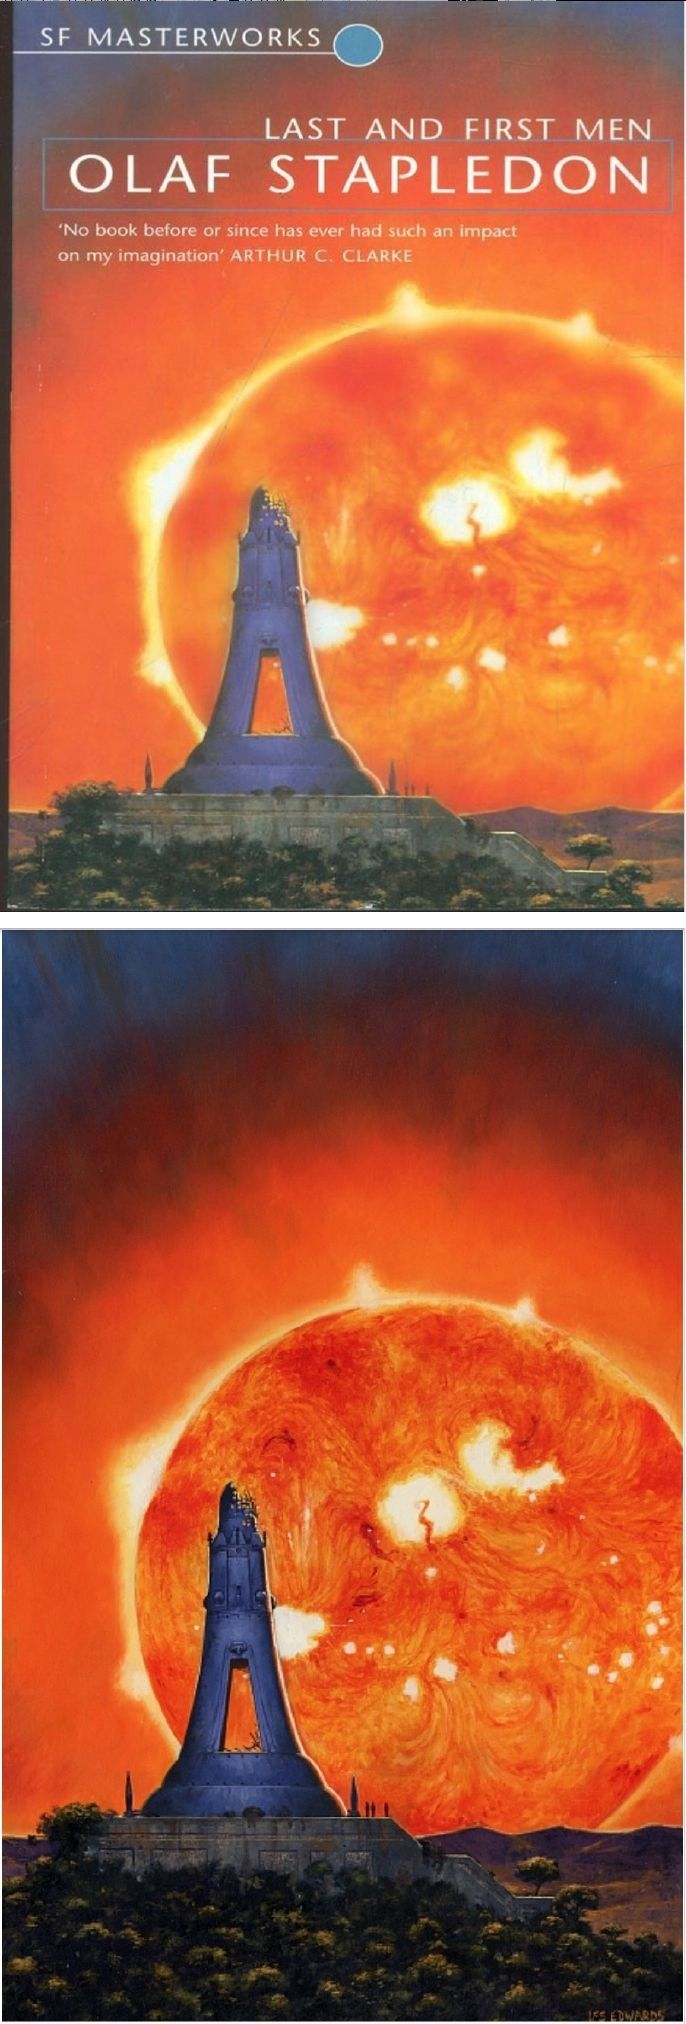 Les Edwards Last And First Men By Olaf Stapledon 1999 Millennium Orion Cover By Abebooks Co Uk Print By Lesedw Romantic Style Fantasy Science Fiction